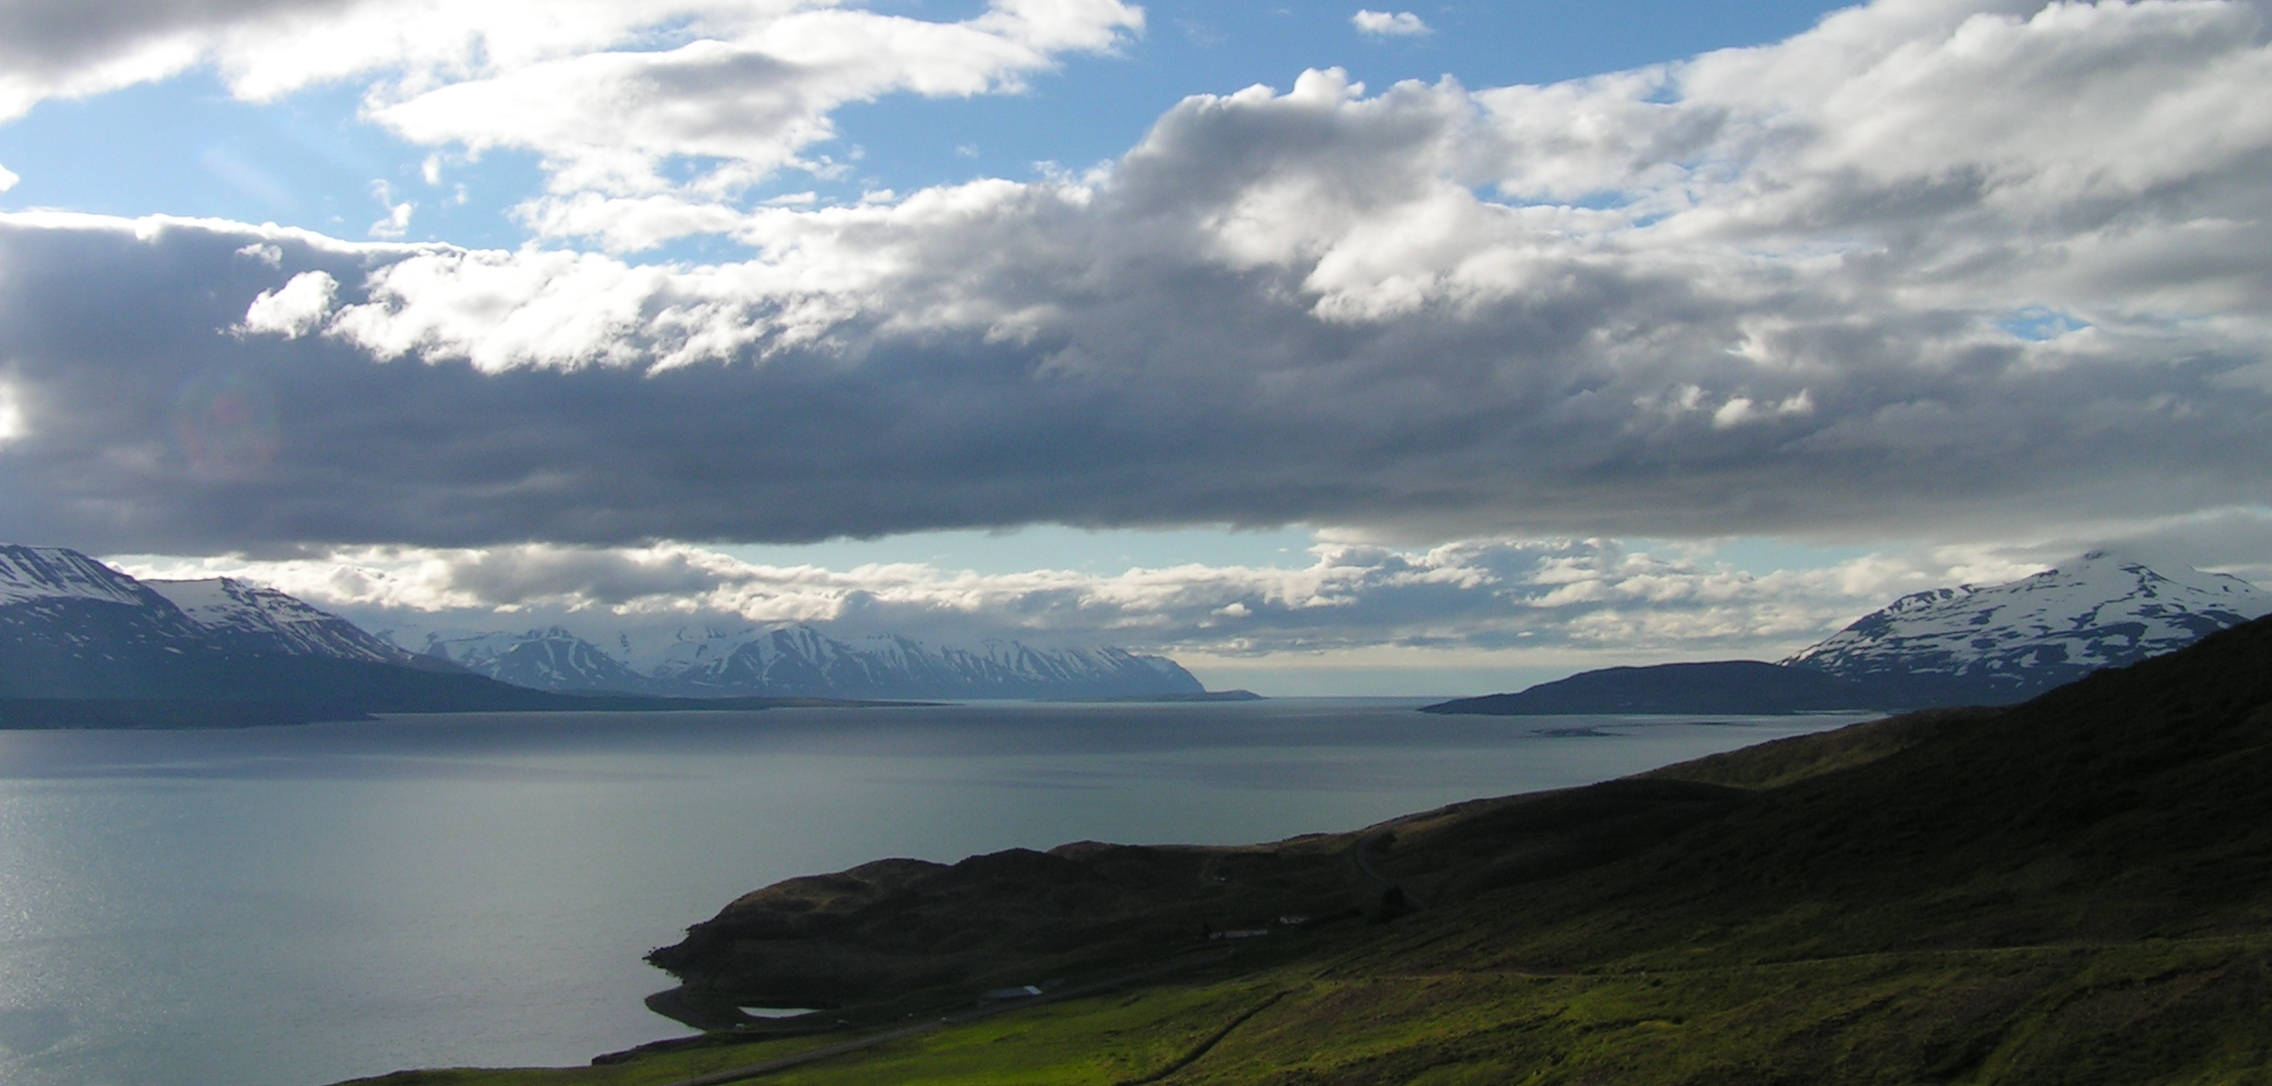 Mountain view in Iceland